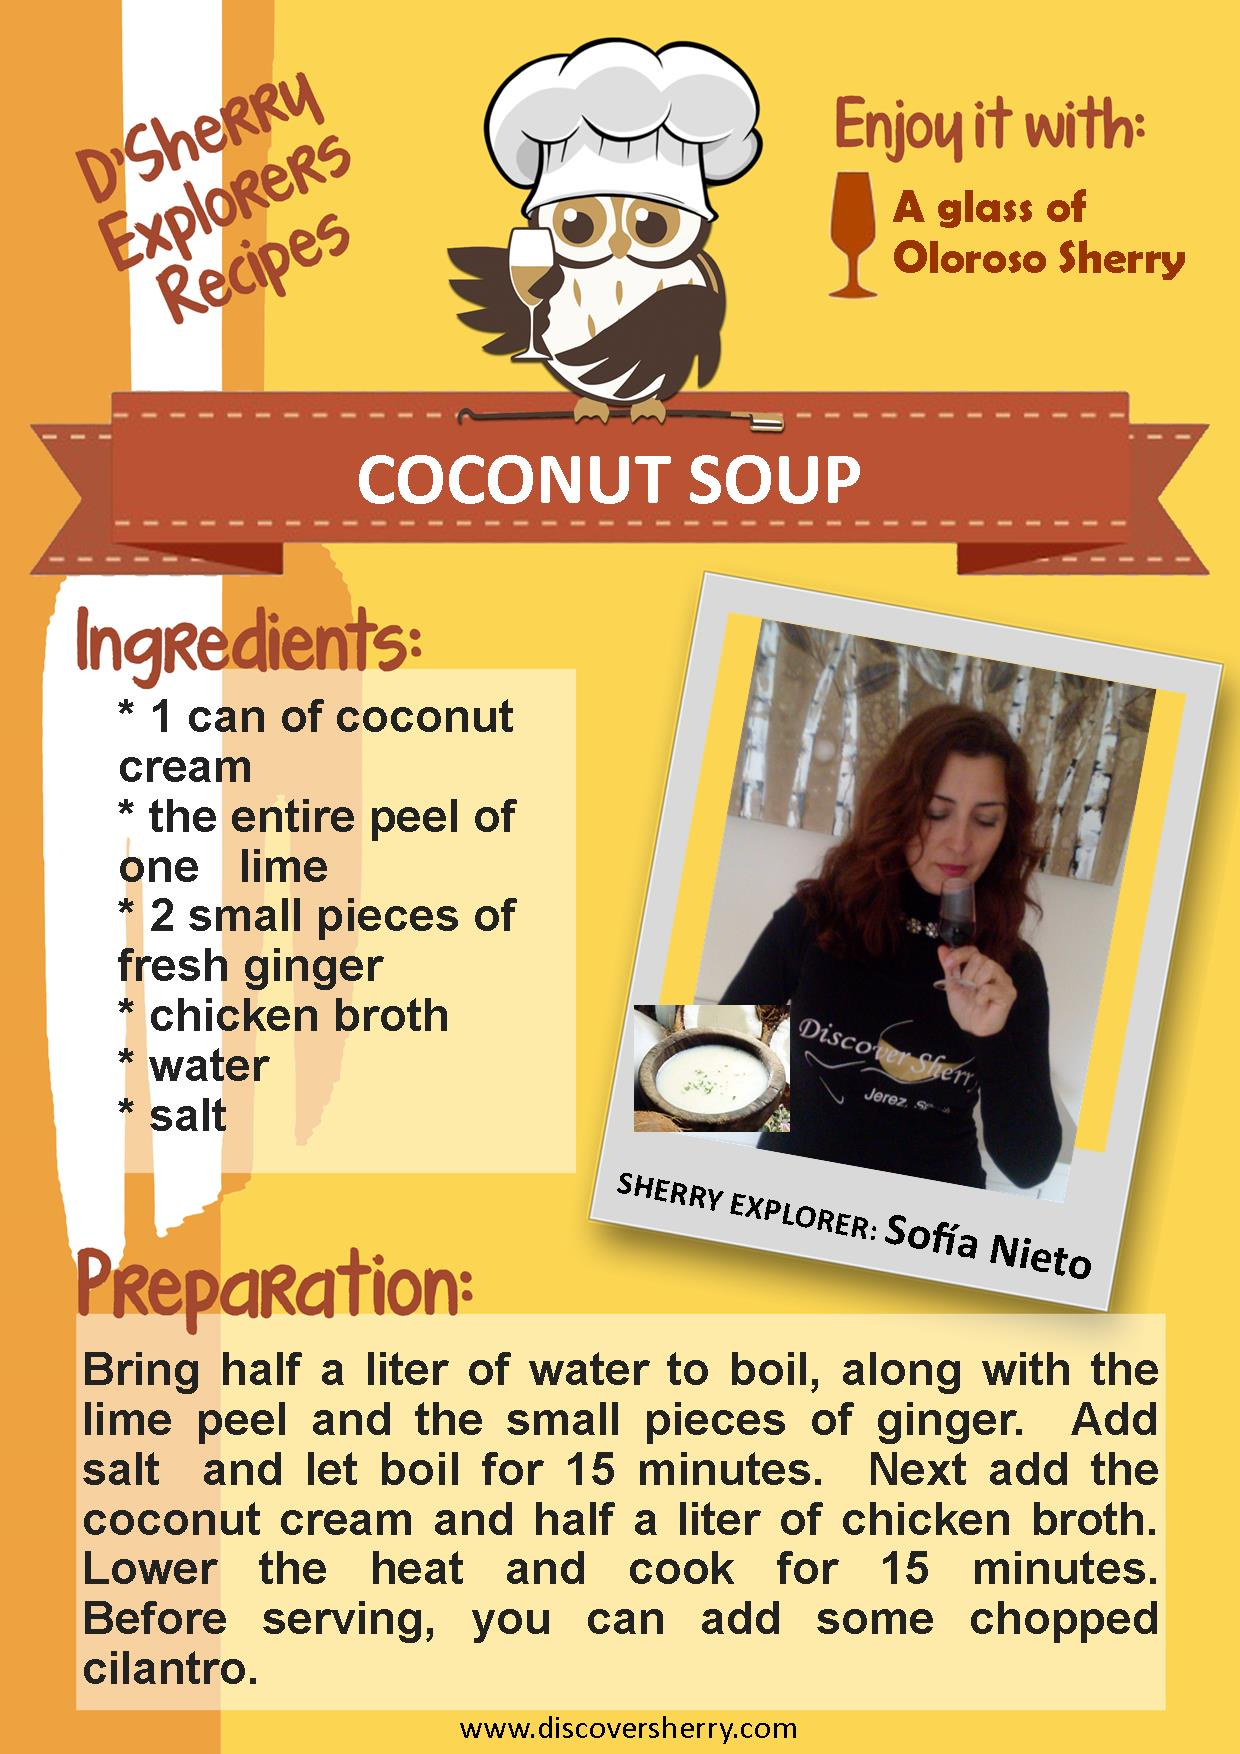 D´Sherry Explorers´ Recipes: Coconut Soup. Recetas de  D´Sherry Explorers: Sopa de Coco